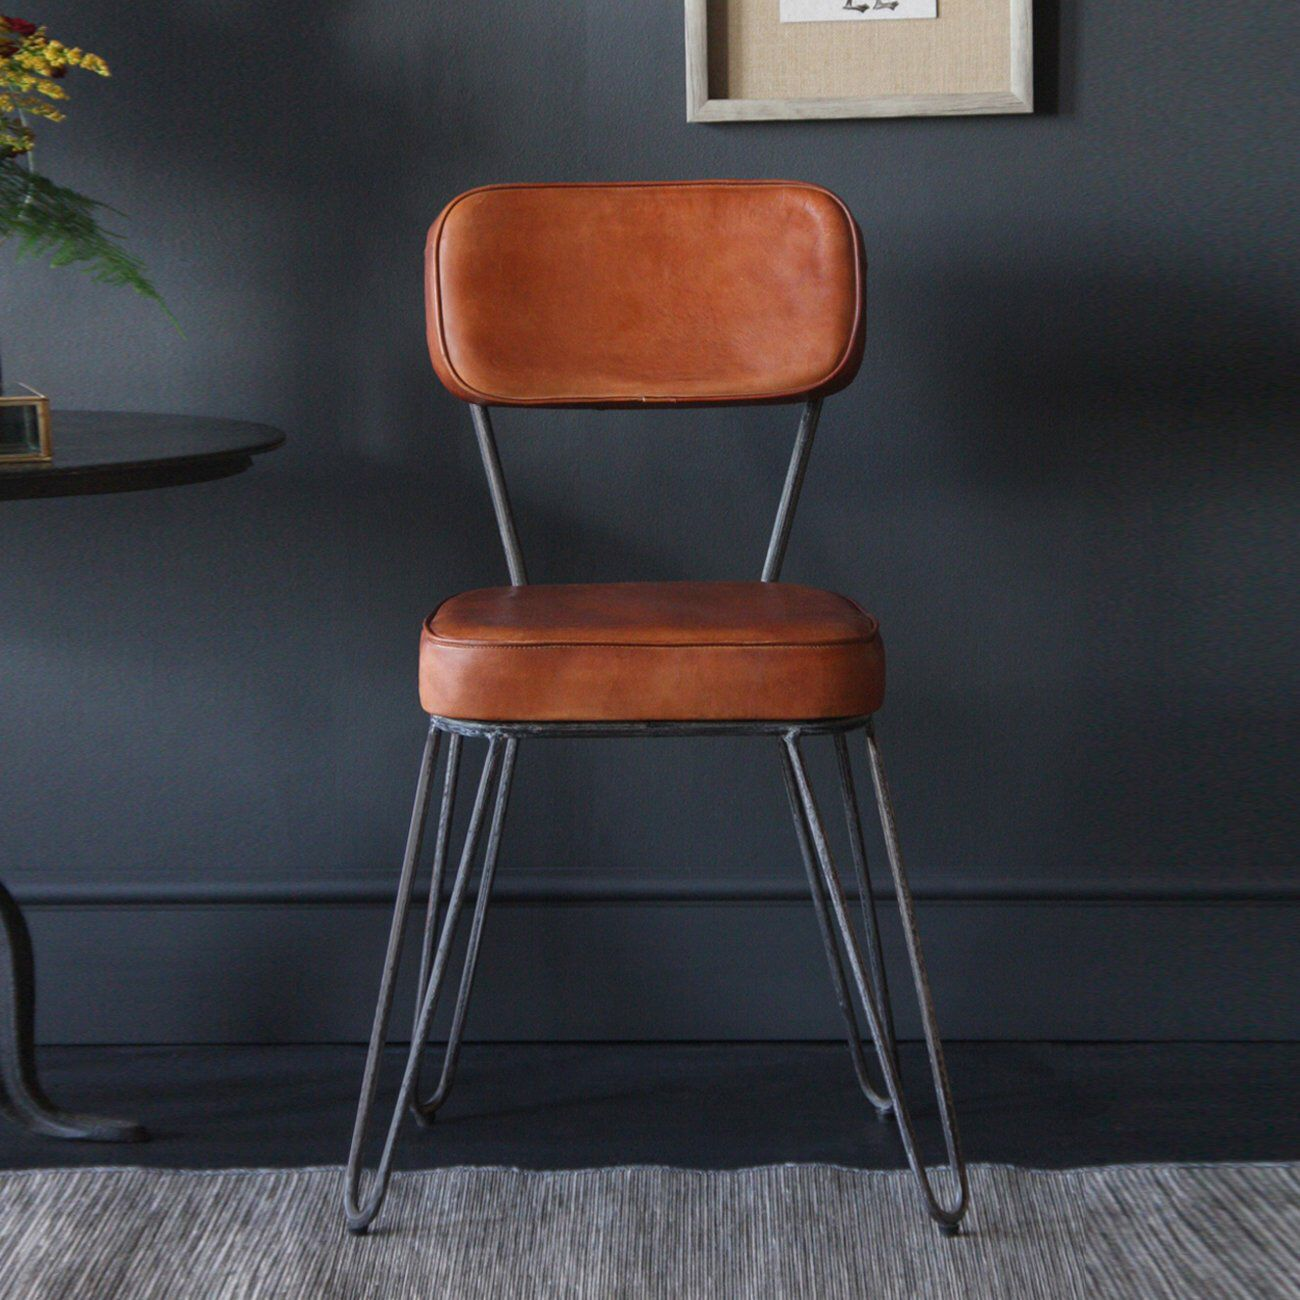 Hairpin Chair fully upholstered Industrial Vintage Dining